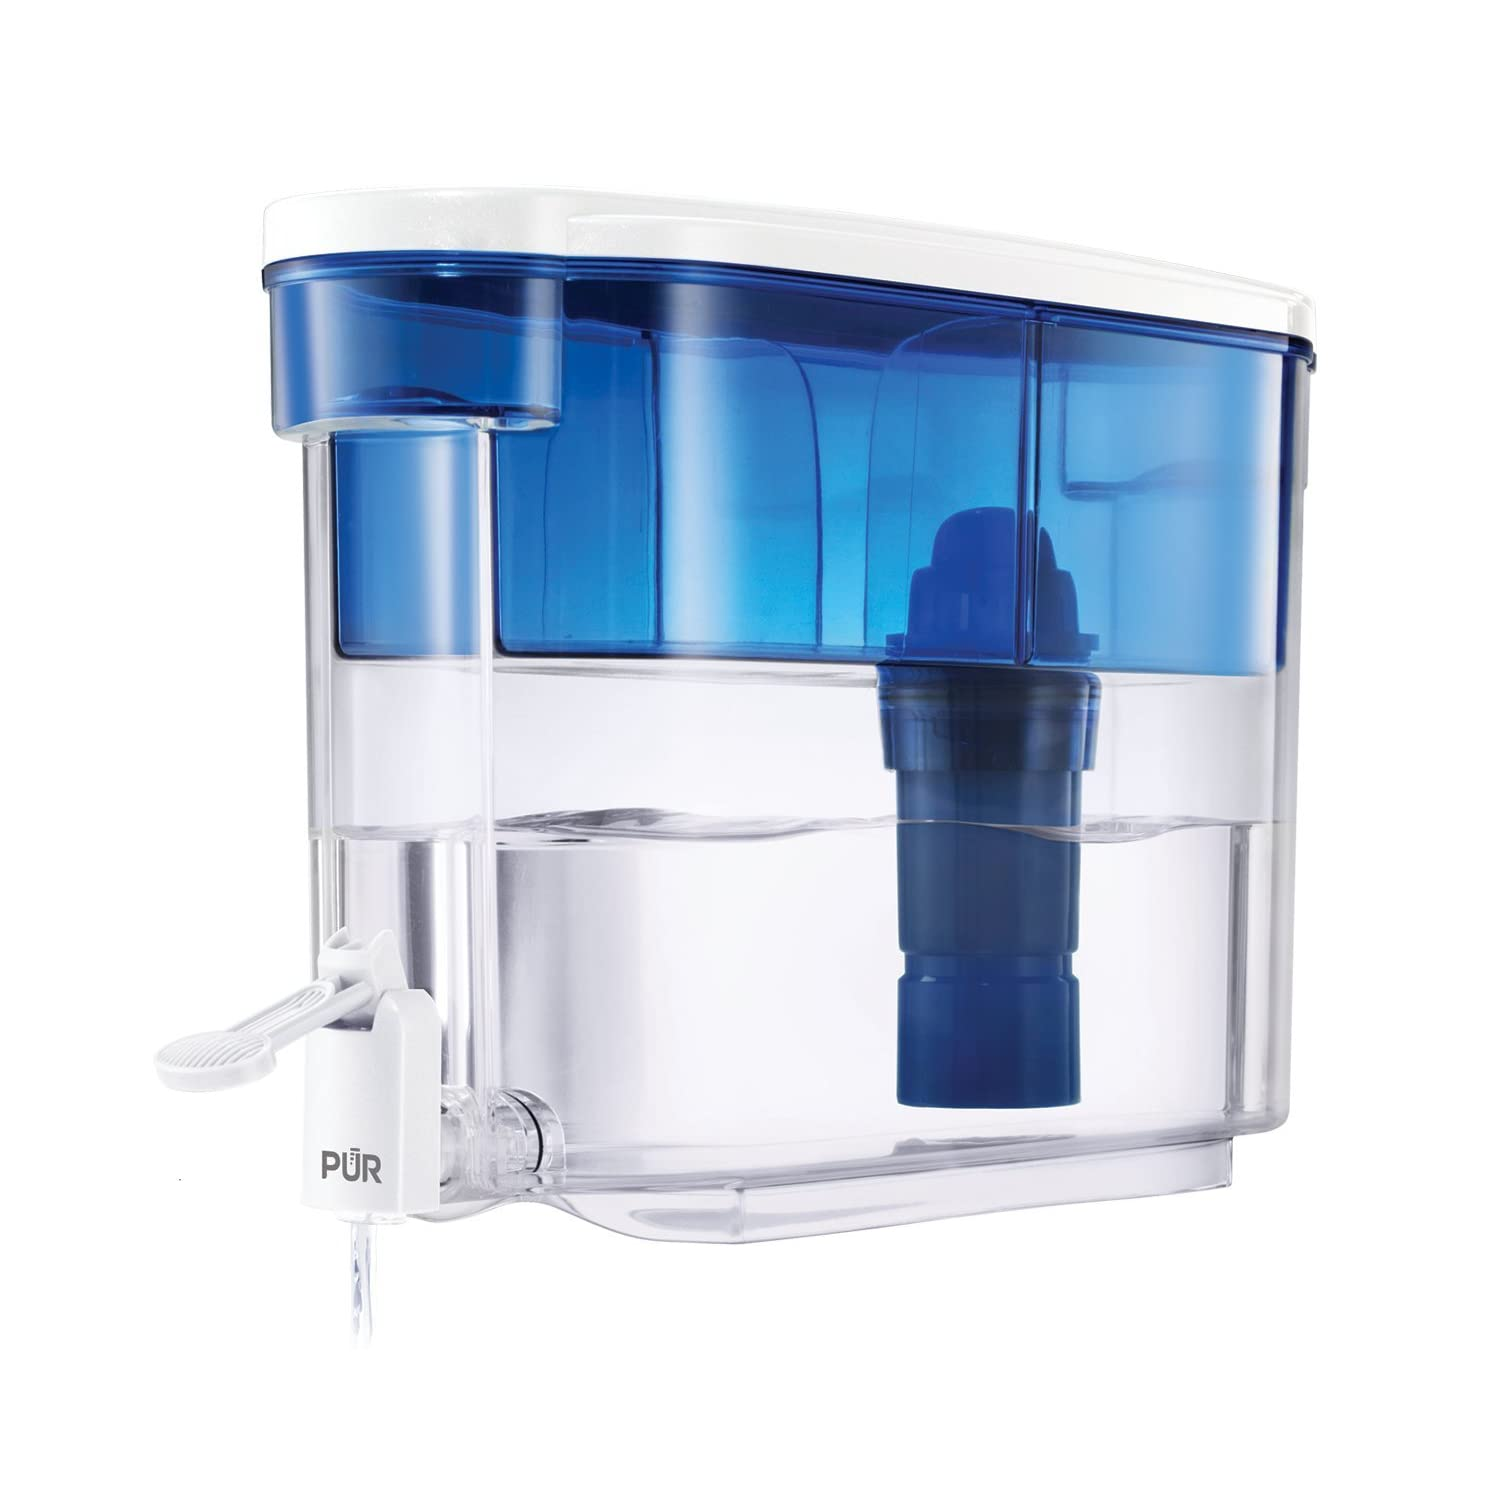 PUR 18 Cup Dispenser Review